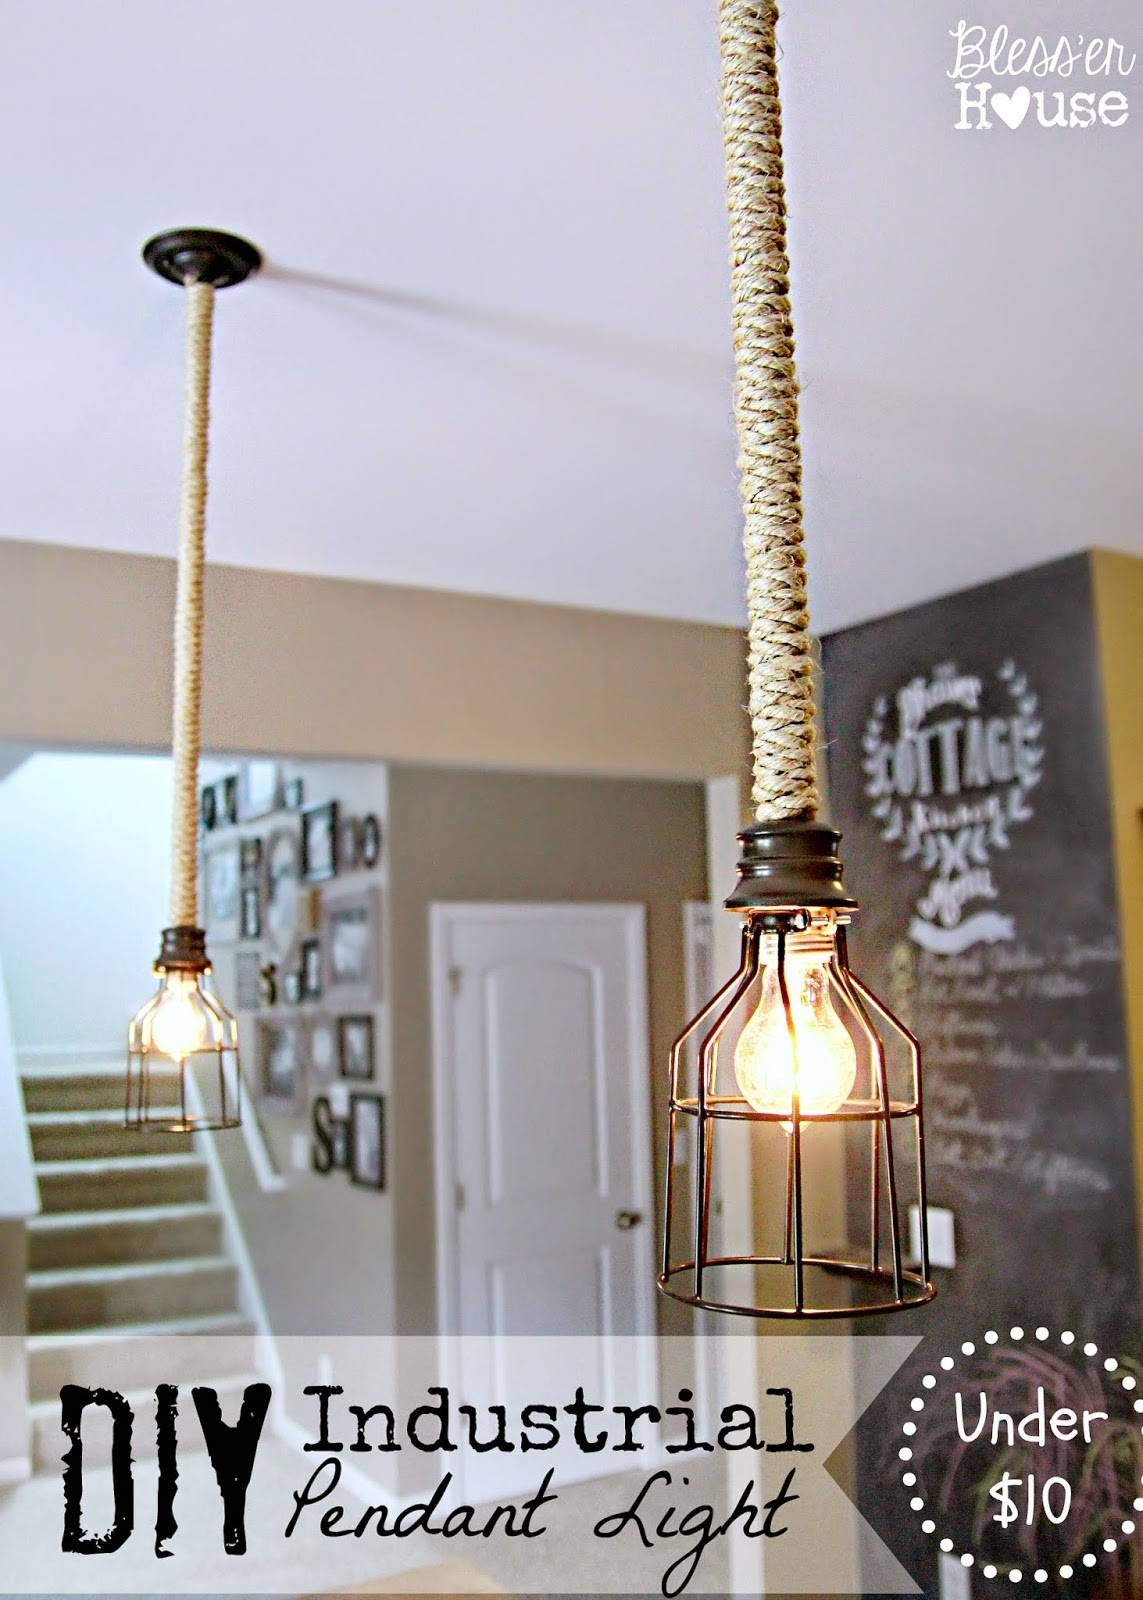 Diy Industrial Pendant Light For Under $10 - Bless'er House throughout Industrial Looking Pendant Lights Fixtures (Image 5 of 15)